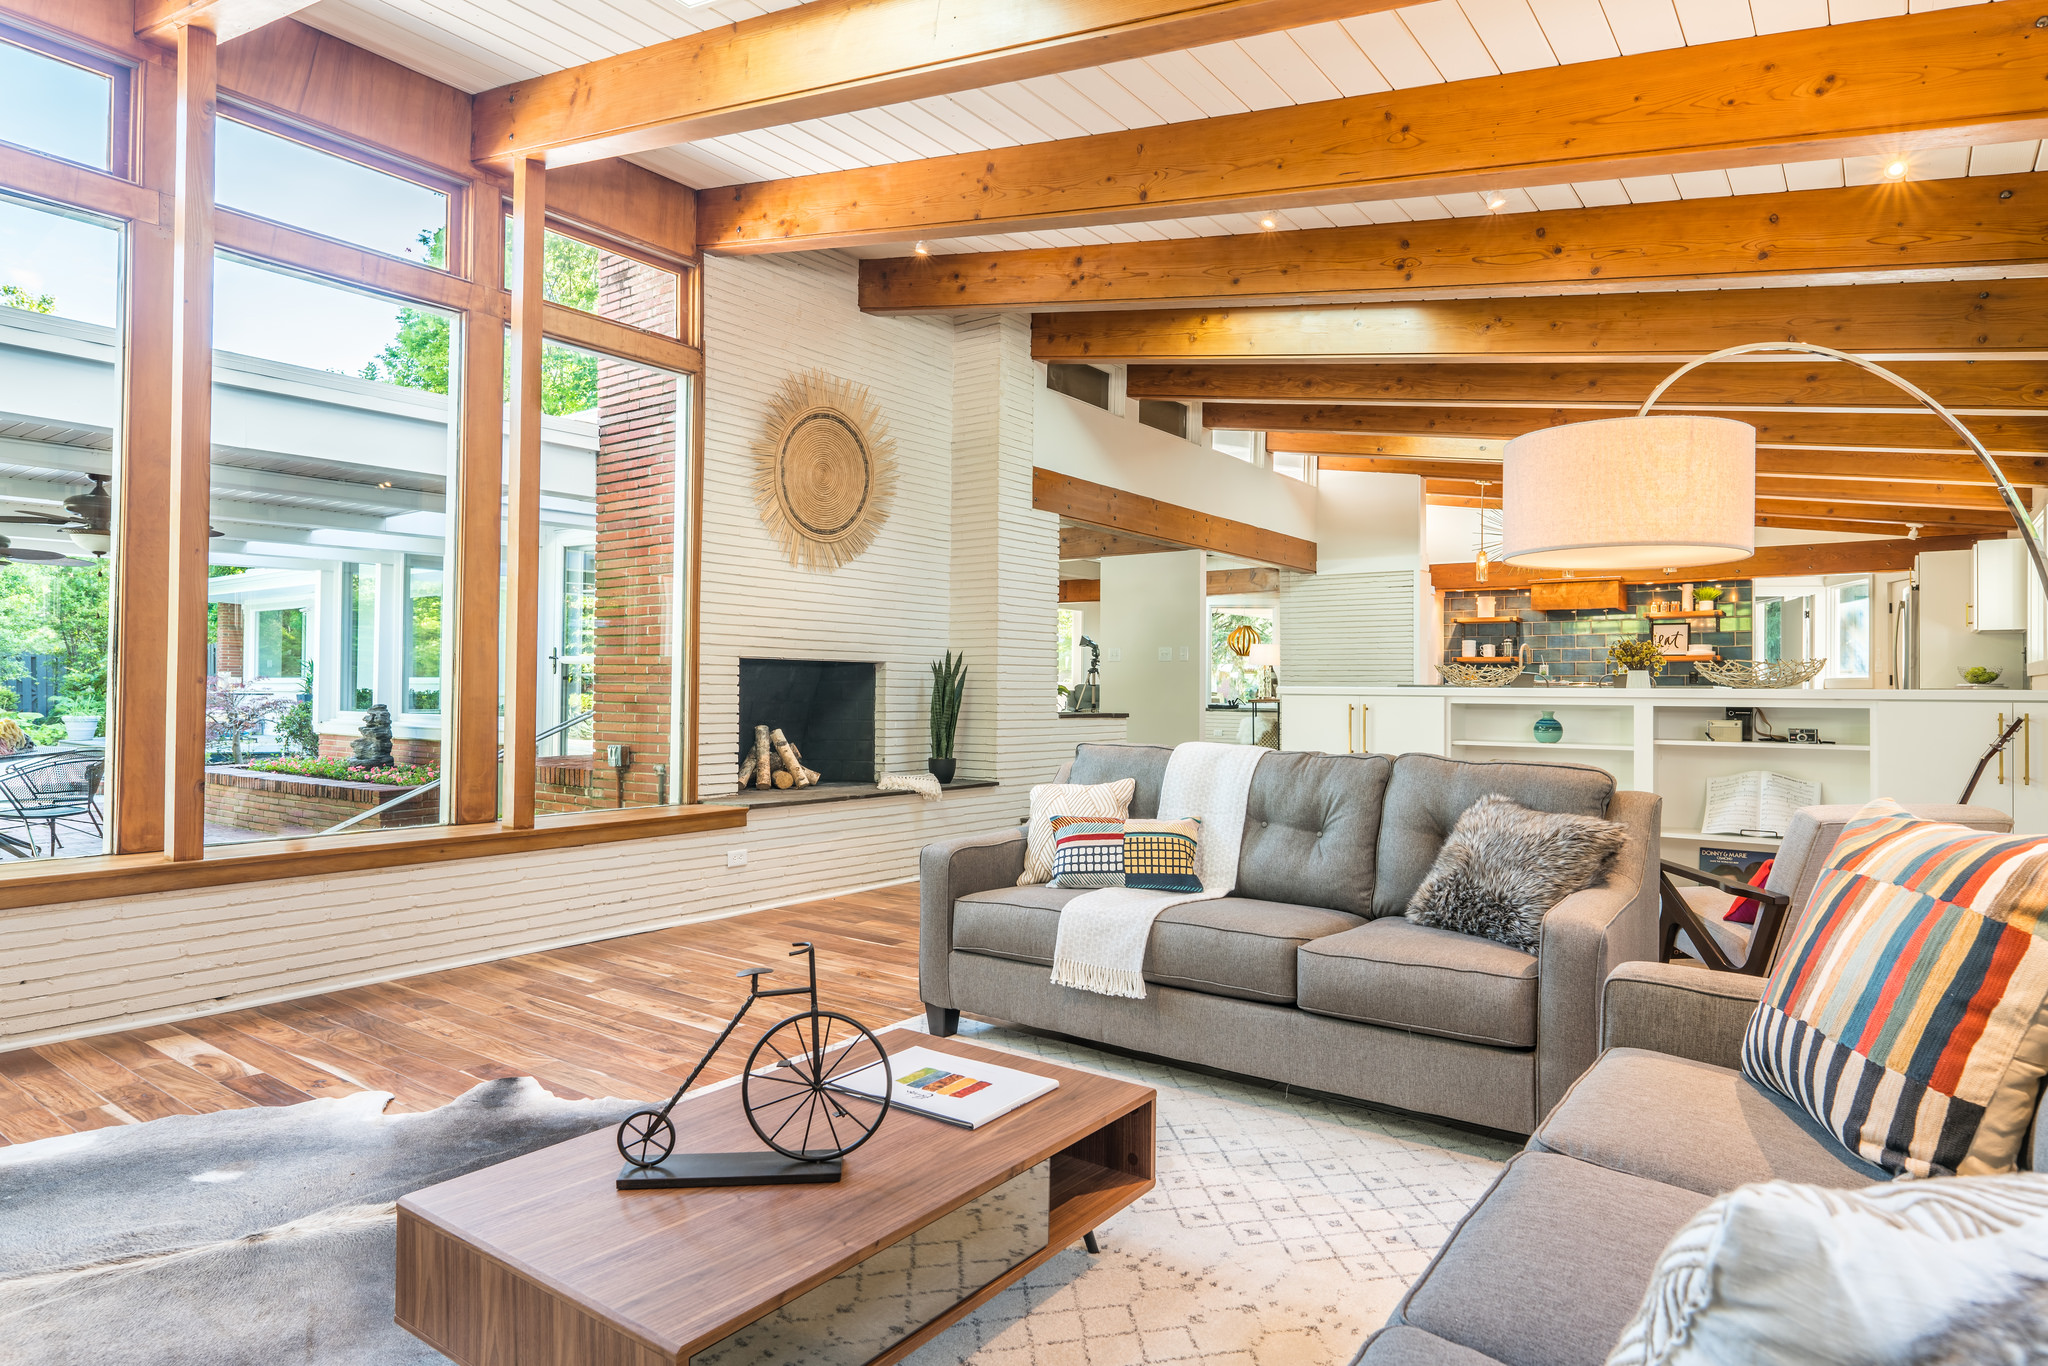 Wood-burning fireplace in the living room